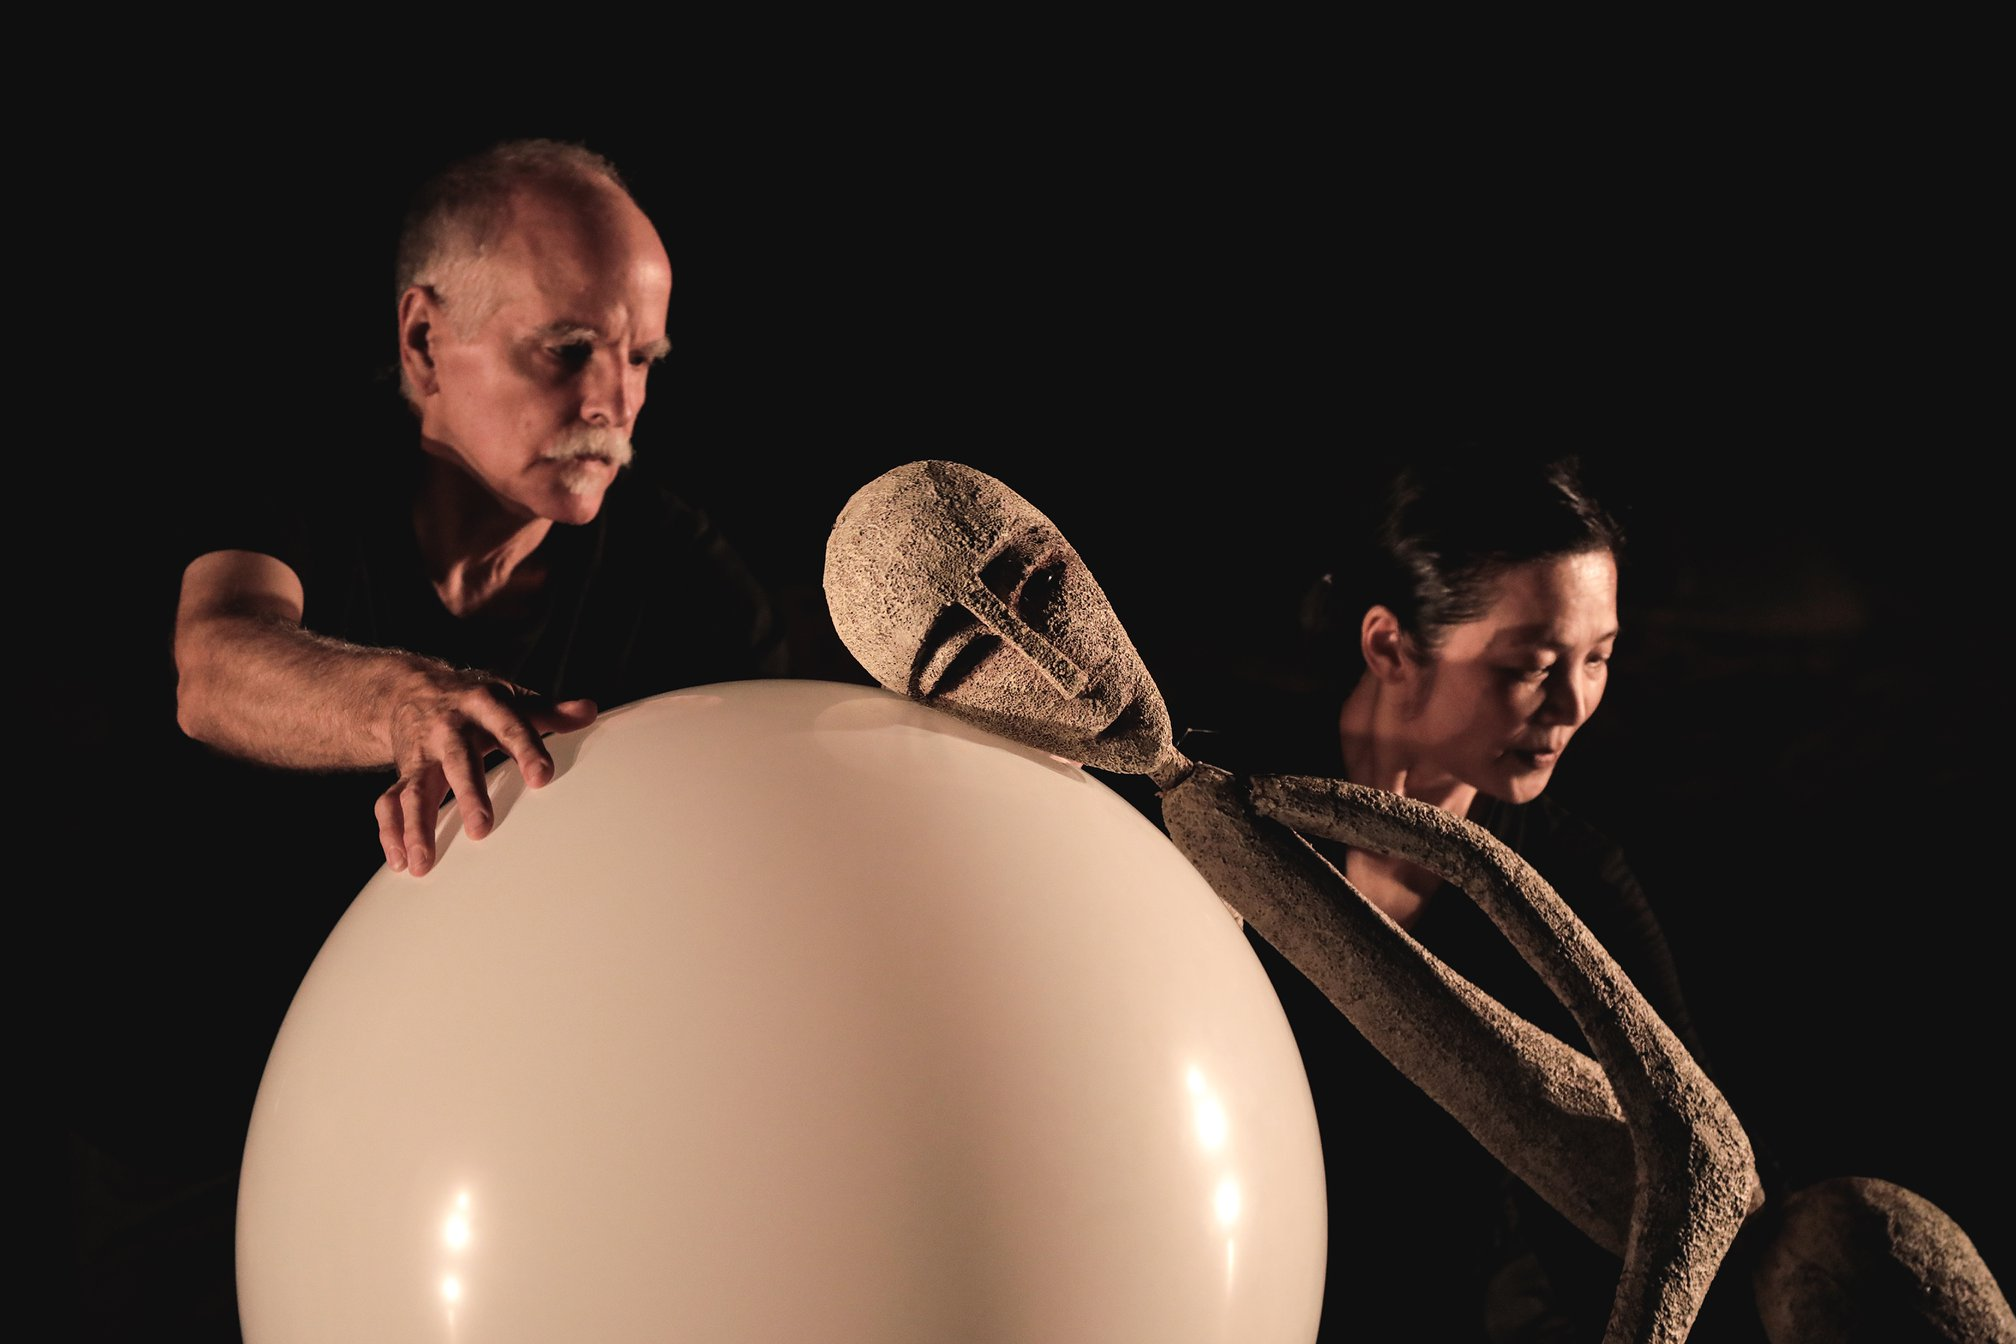 two performers manipulate a stick thin puppet leaning on a white ball in a dramatic pose